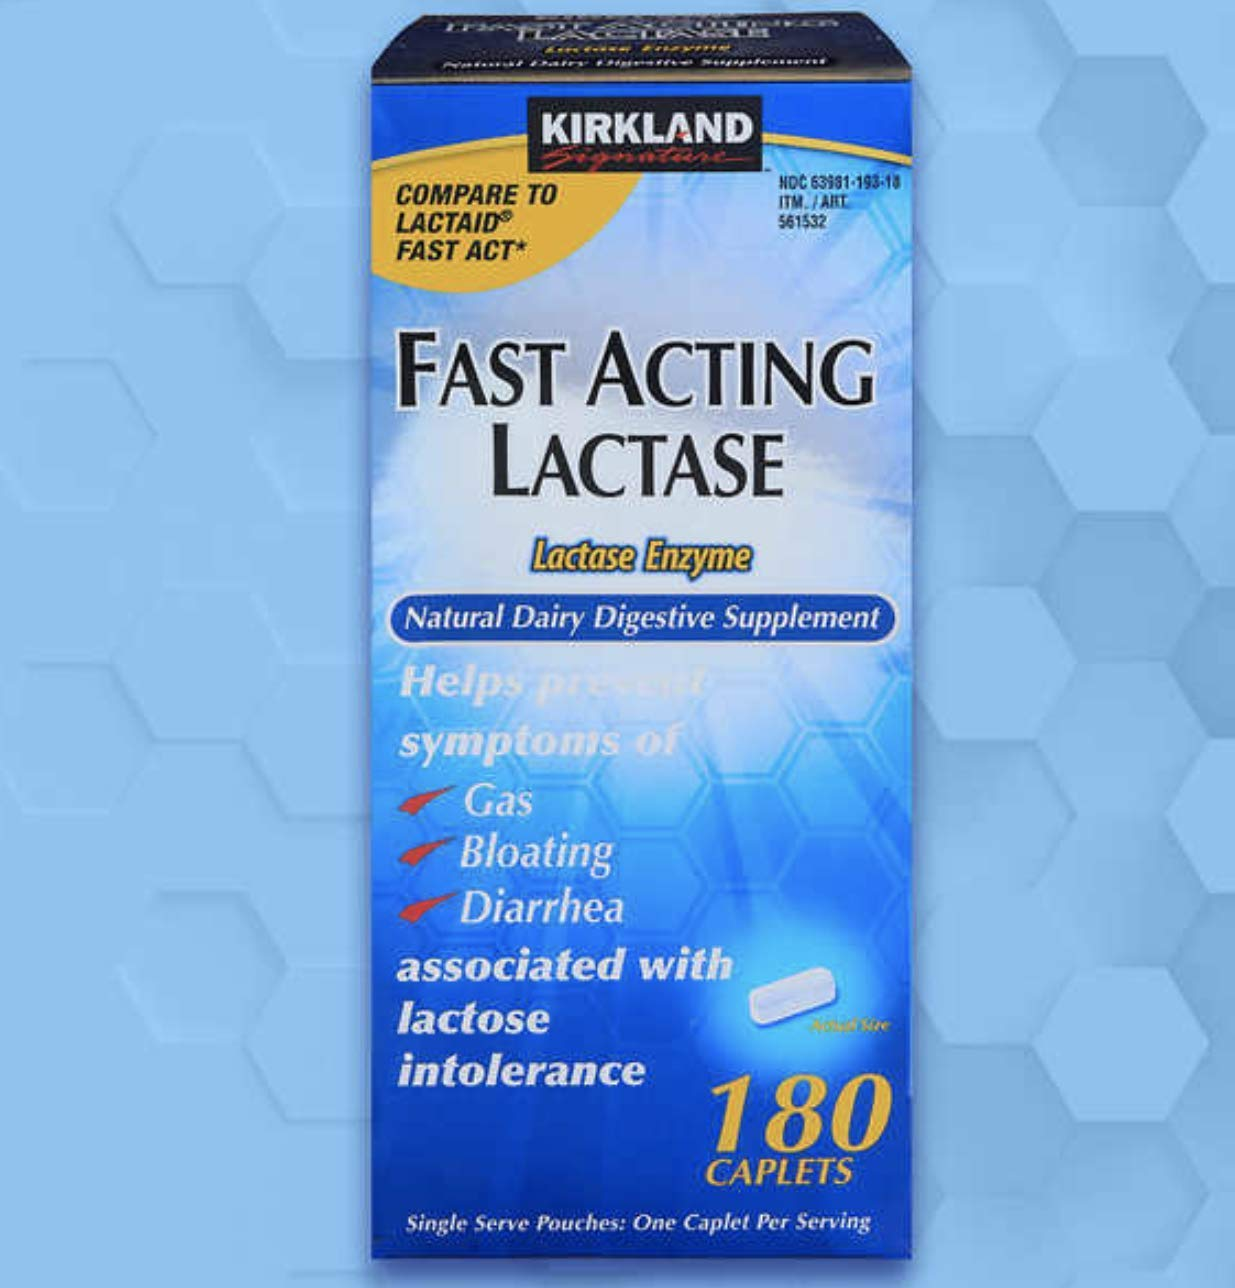 Kirkland Signature Fast Acting Lactase, 1 Pack of 180 Caplets by Kirkland Signature